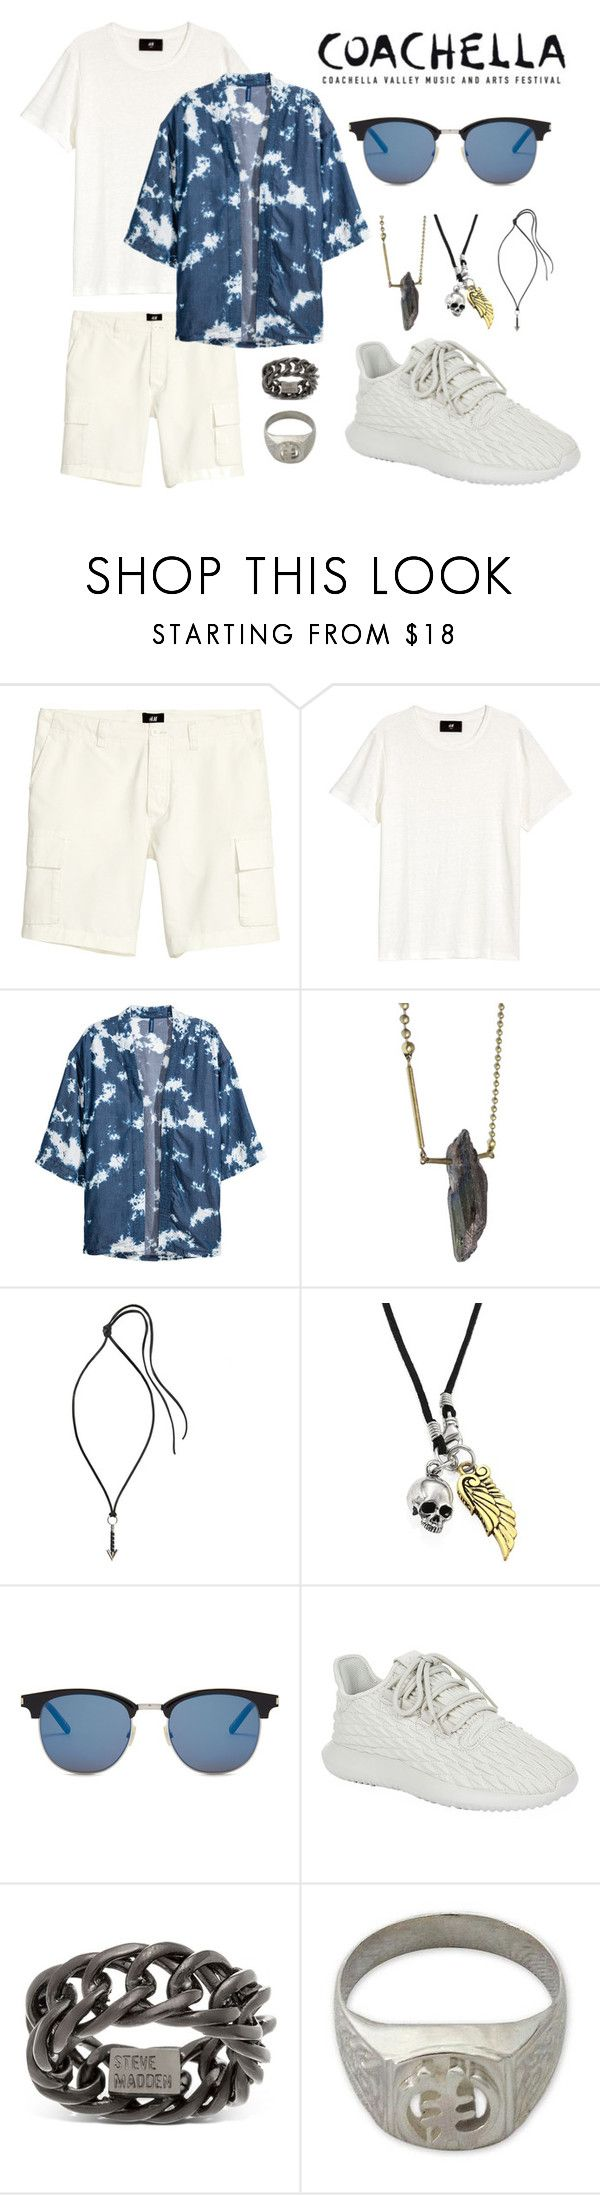 """""""COACHELLA MEN'S #2"""" by akfhxny on Polyvore featuring Isabelle Zumbrunn, Lanvin, King Baby Studio, Yves Saint Laurent, adidas Originals, Steve Madden, NOVICA, men's fashion and menswear"""